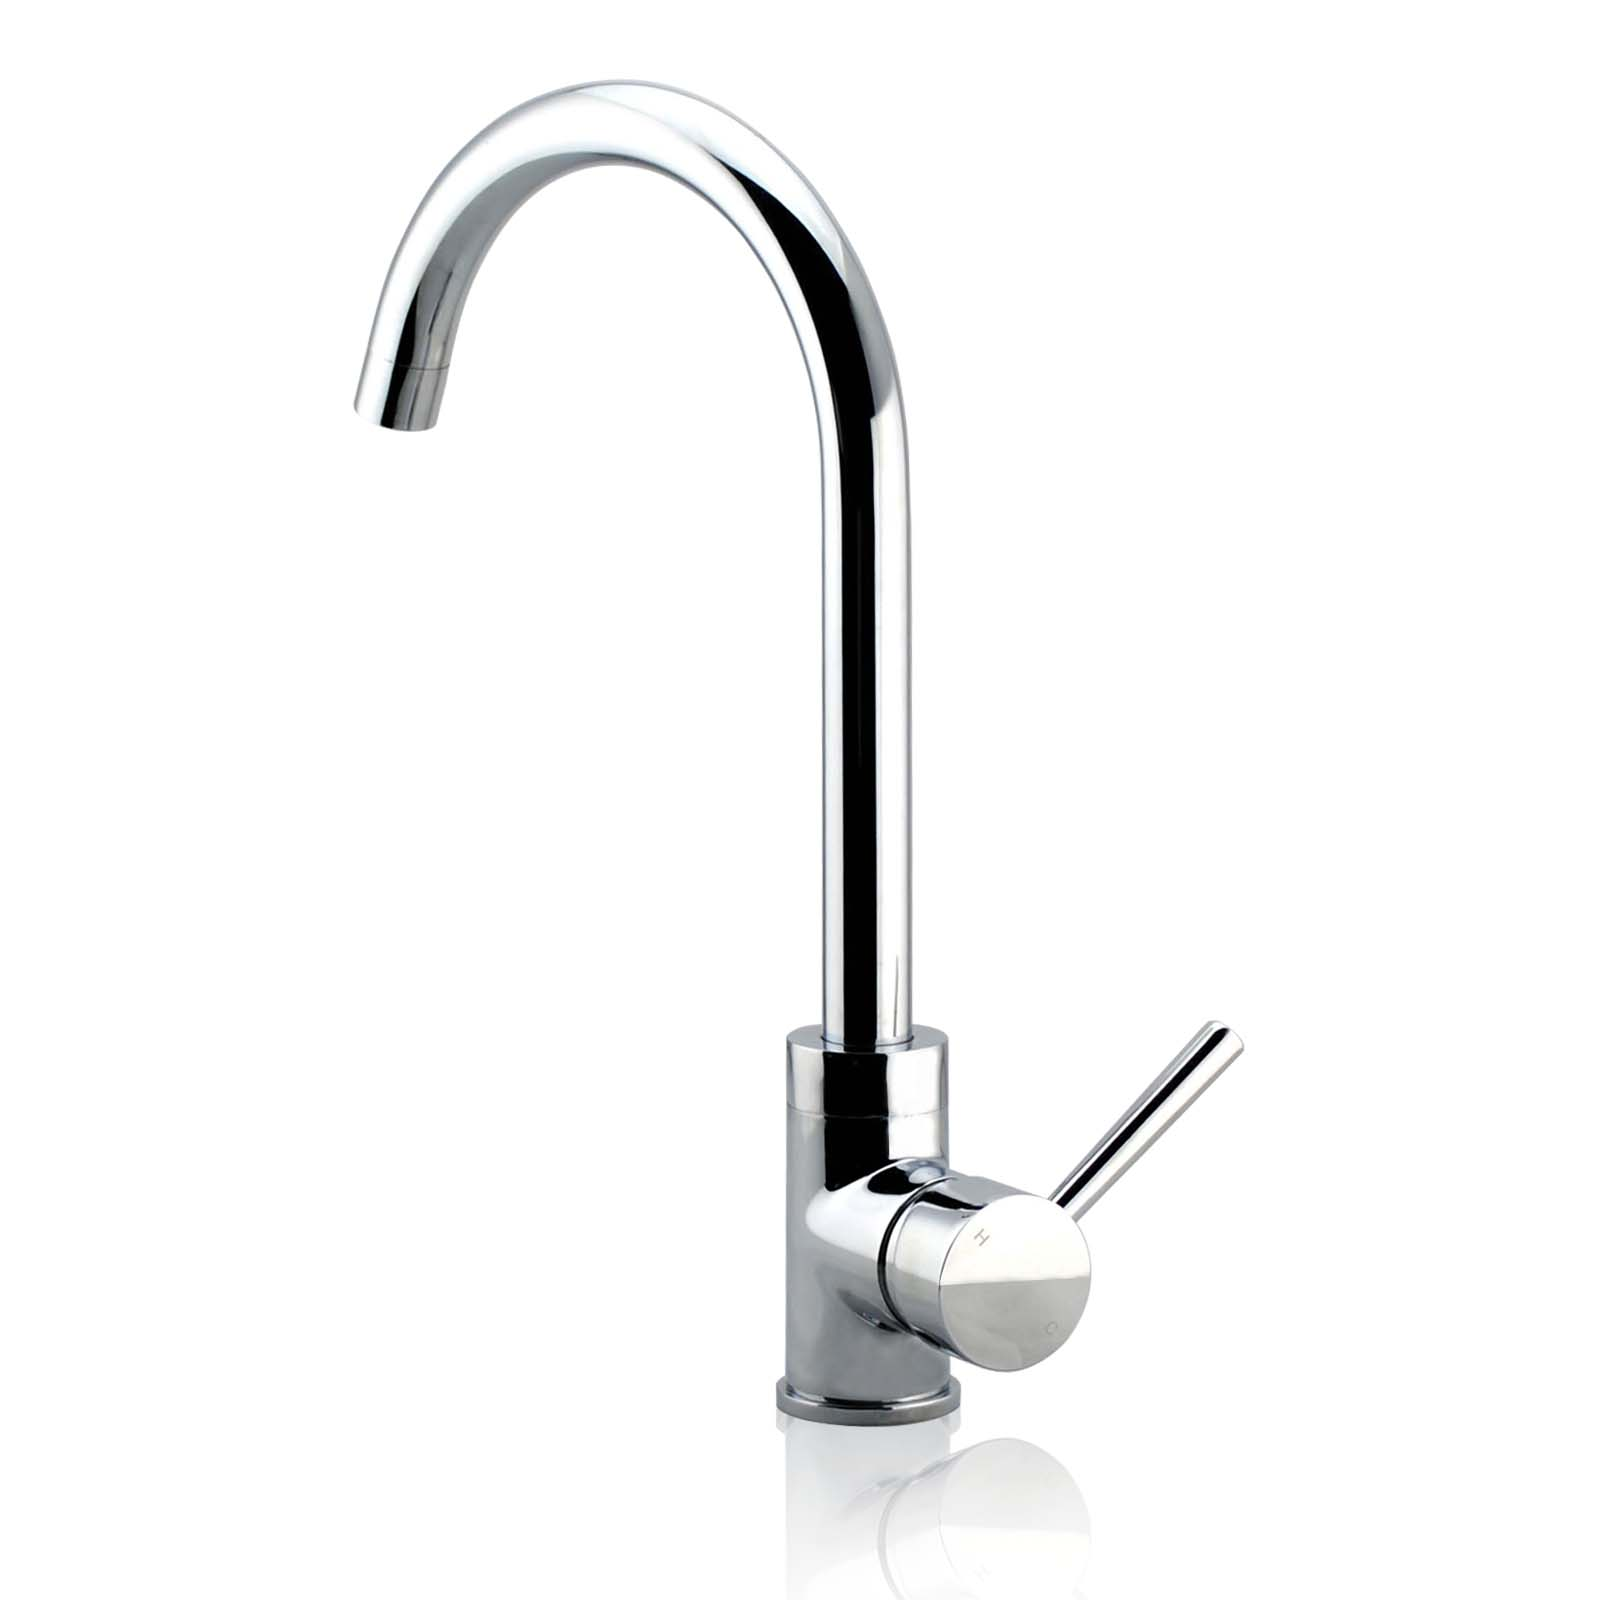 Wels brass kitchen basin sink mixer tap swivel spout shower head spray faucet ebay - Shower head for kitchen sink ...